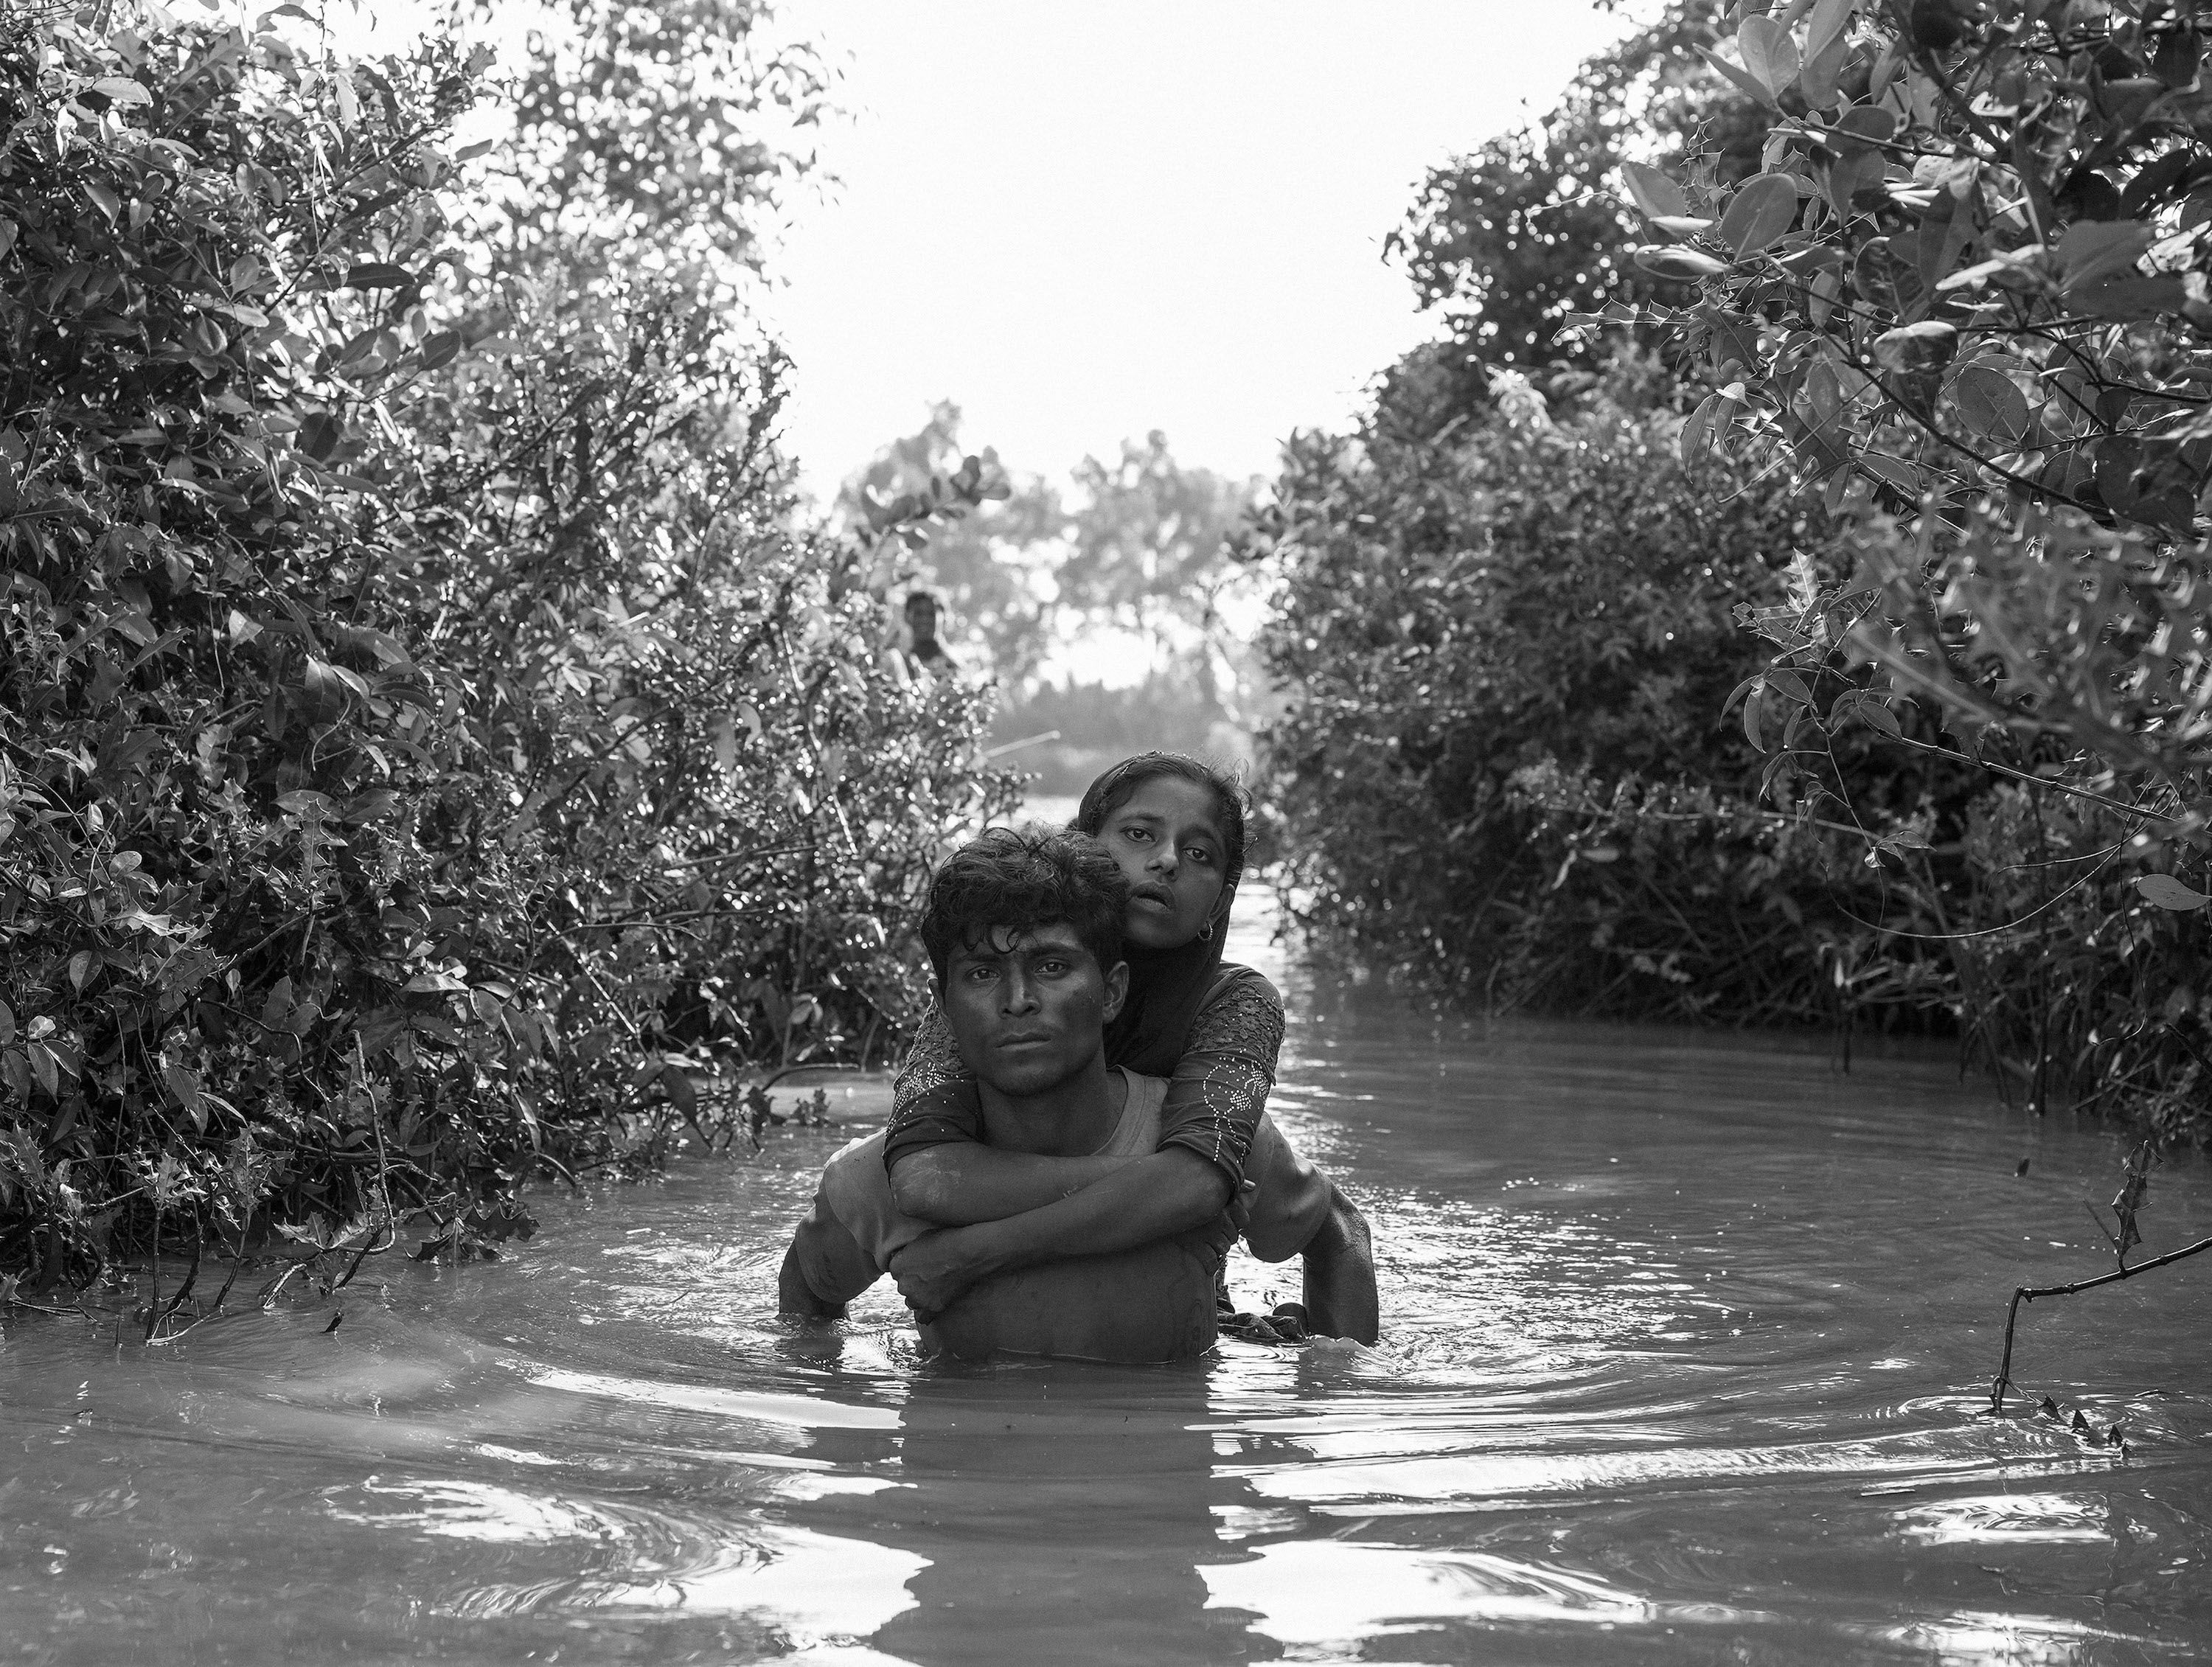 Rohingya refugees cross the naf river from myanmar into bangladesh anjuman para bangladesh october 16 2017 moises saman magnum photos